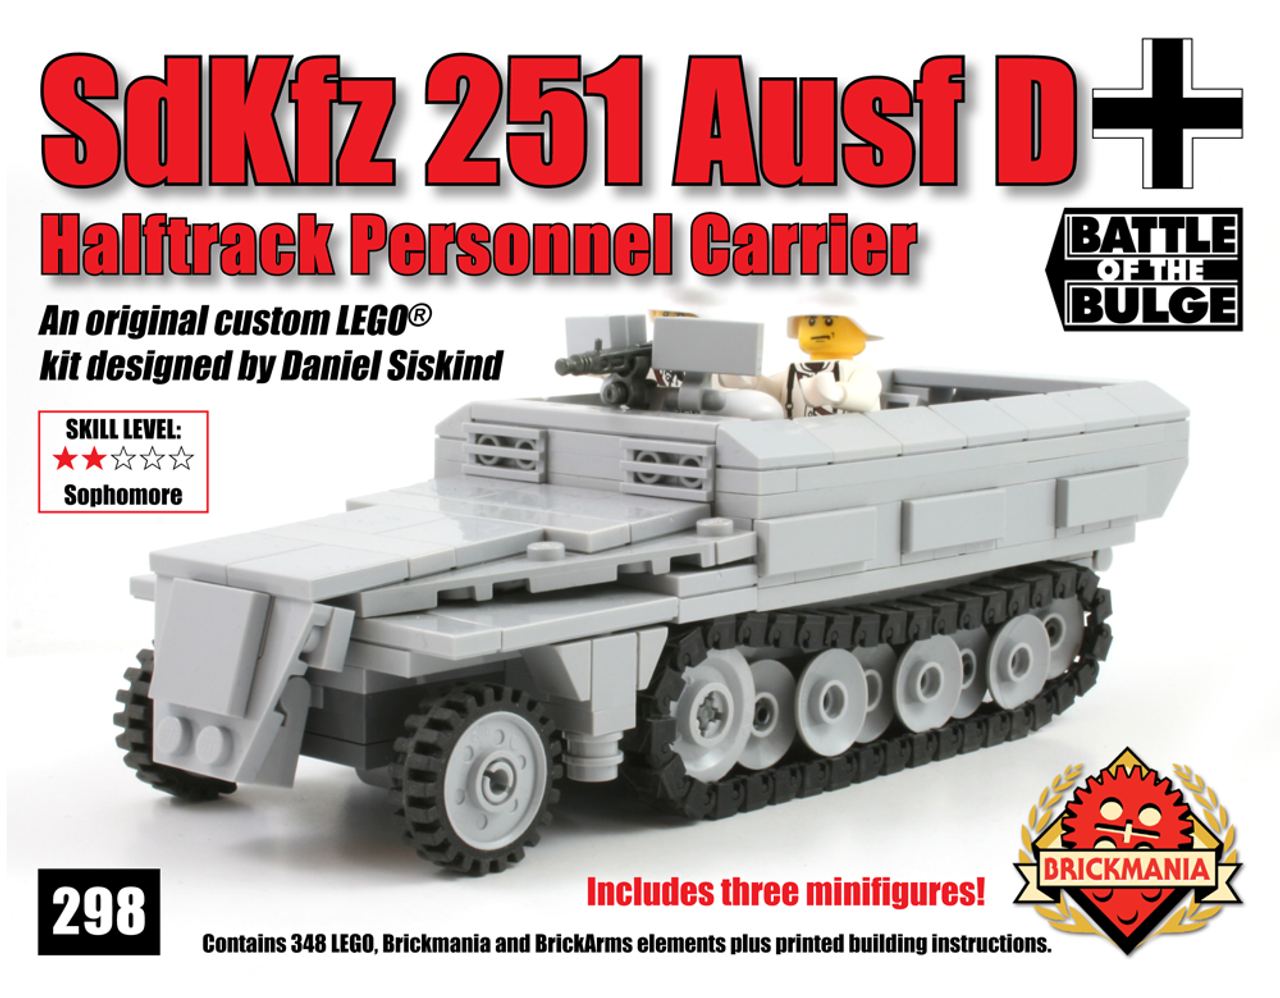 SdKfz 251 Ausf D Halftrack Personnel Carrier